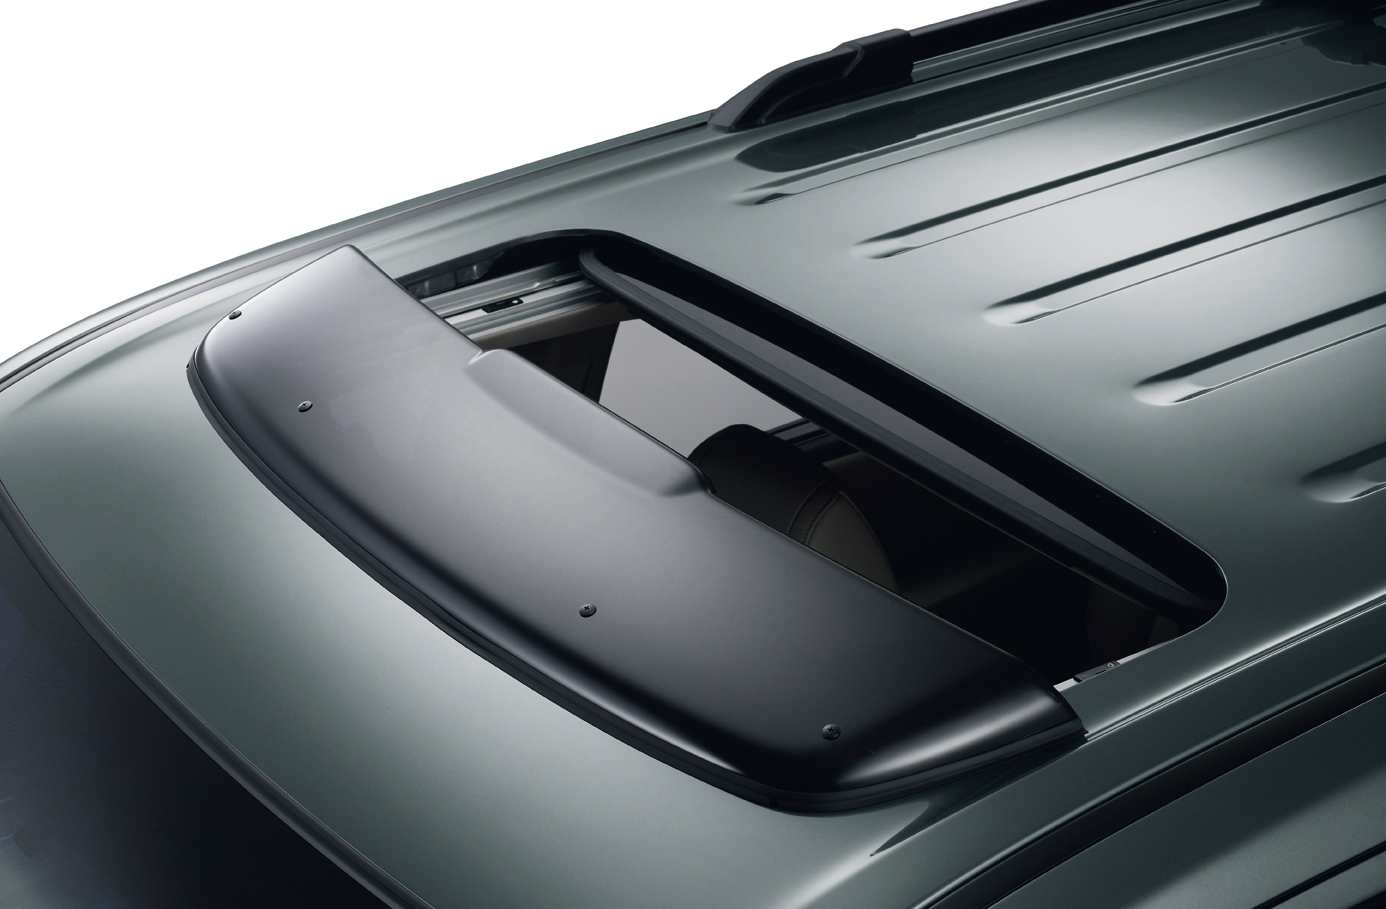 pilot honda moonroof visor sza 2009 accessories genuine oem exterior number accessory store